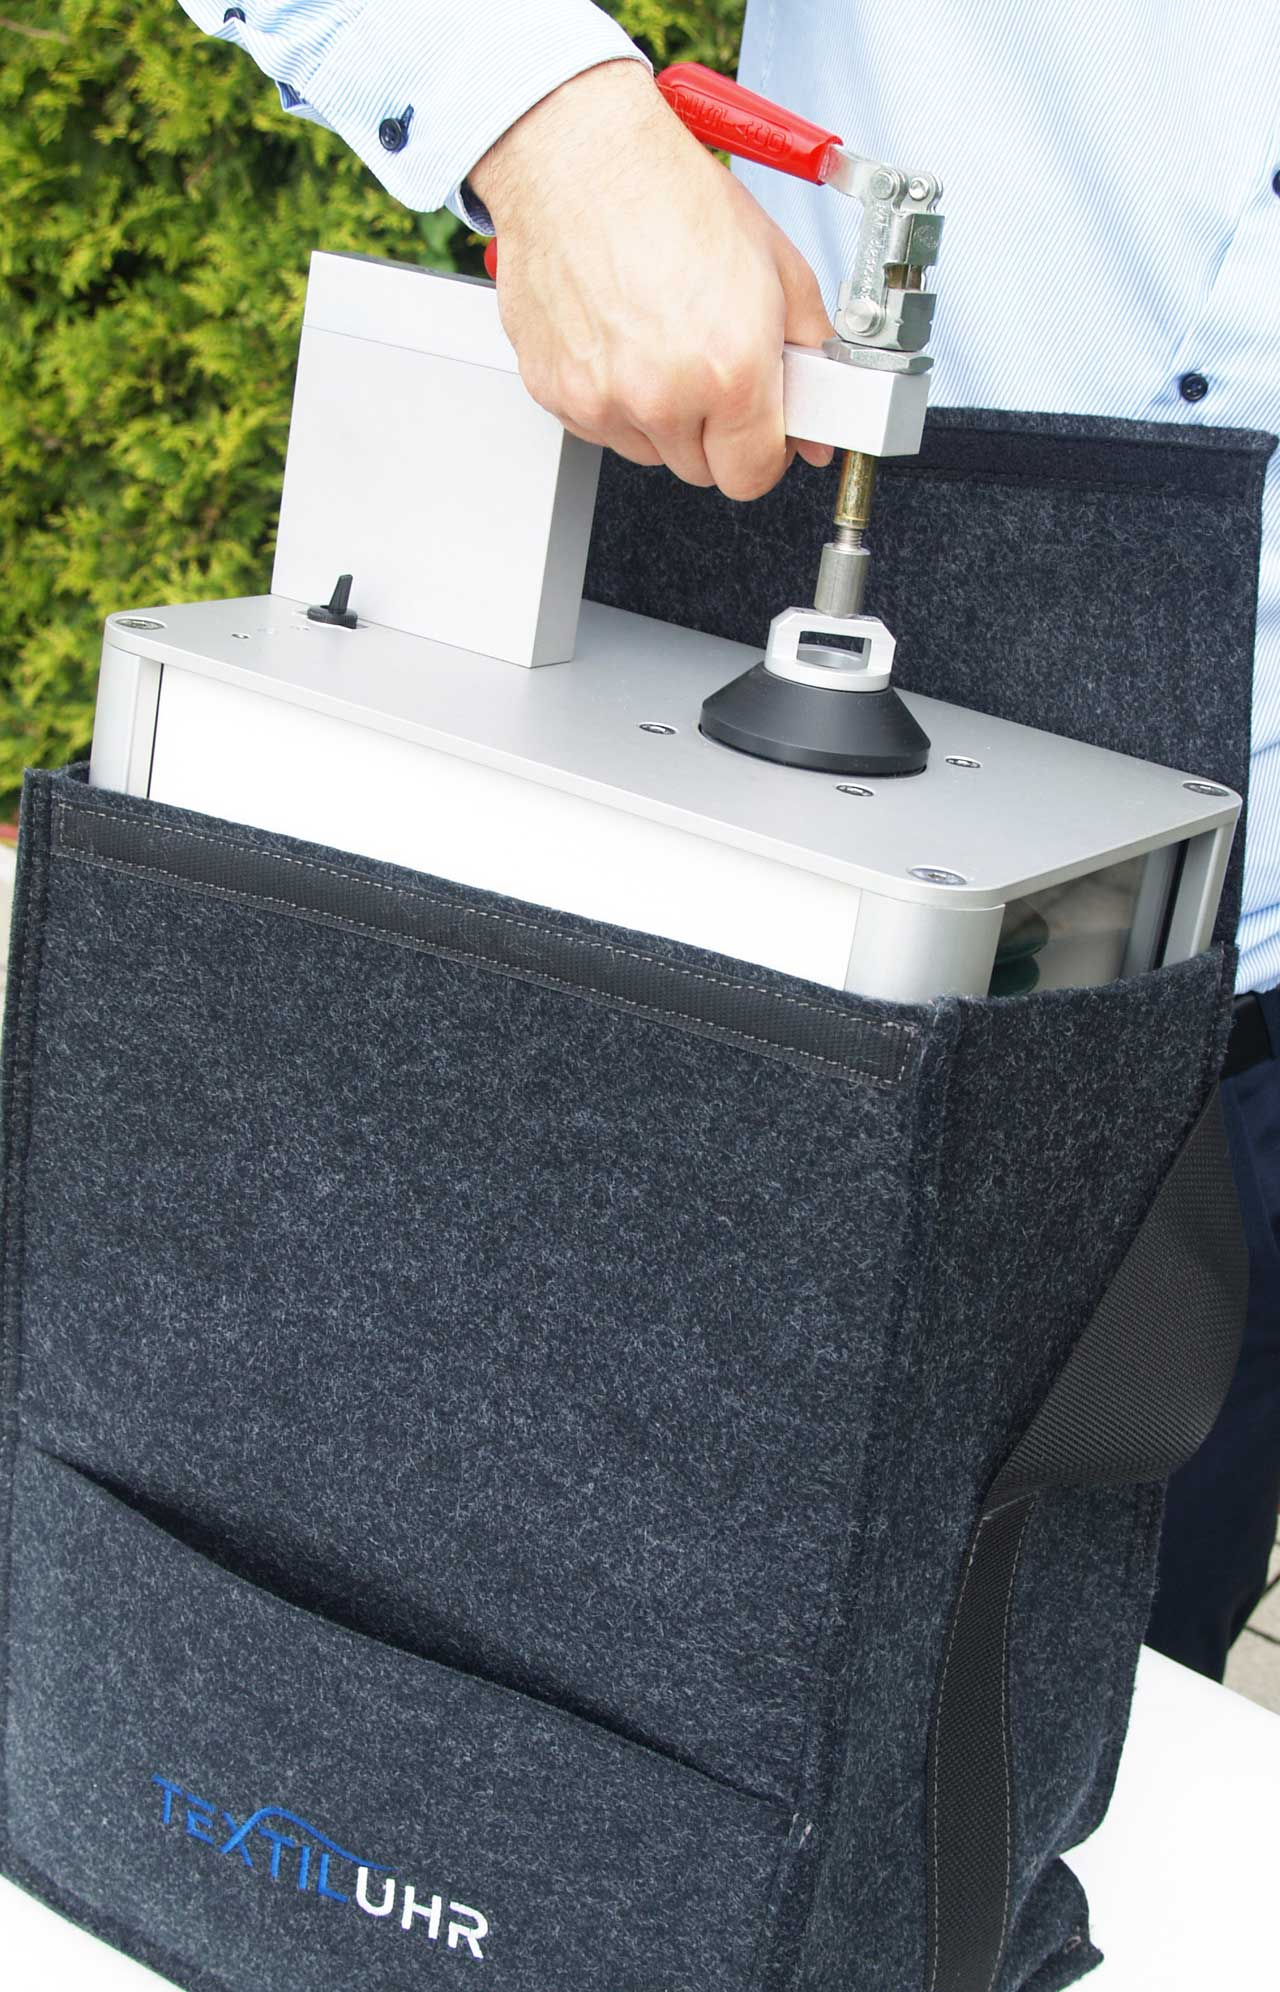 New air permeability tester from F.O.S. for quality testing of textiles